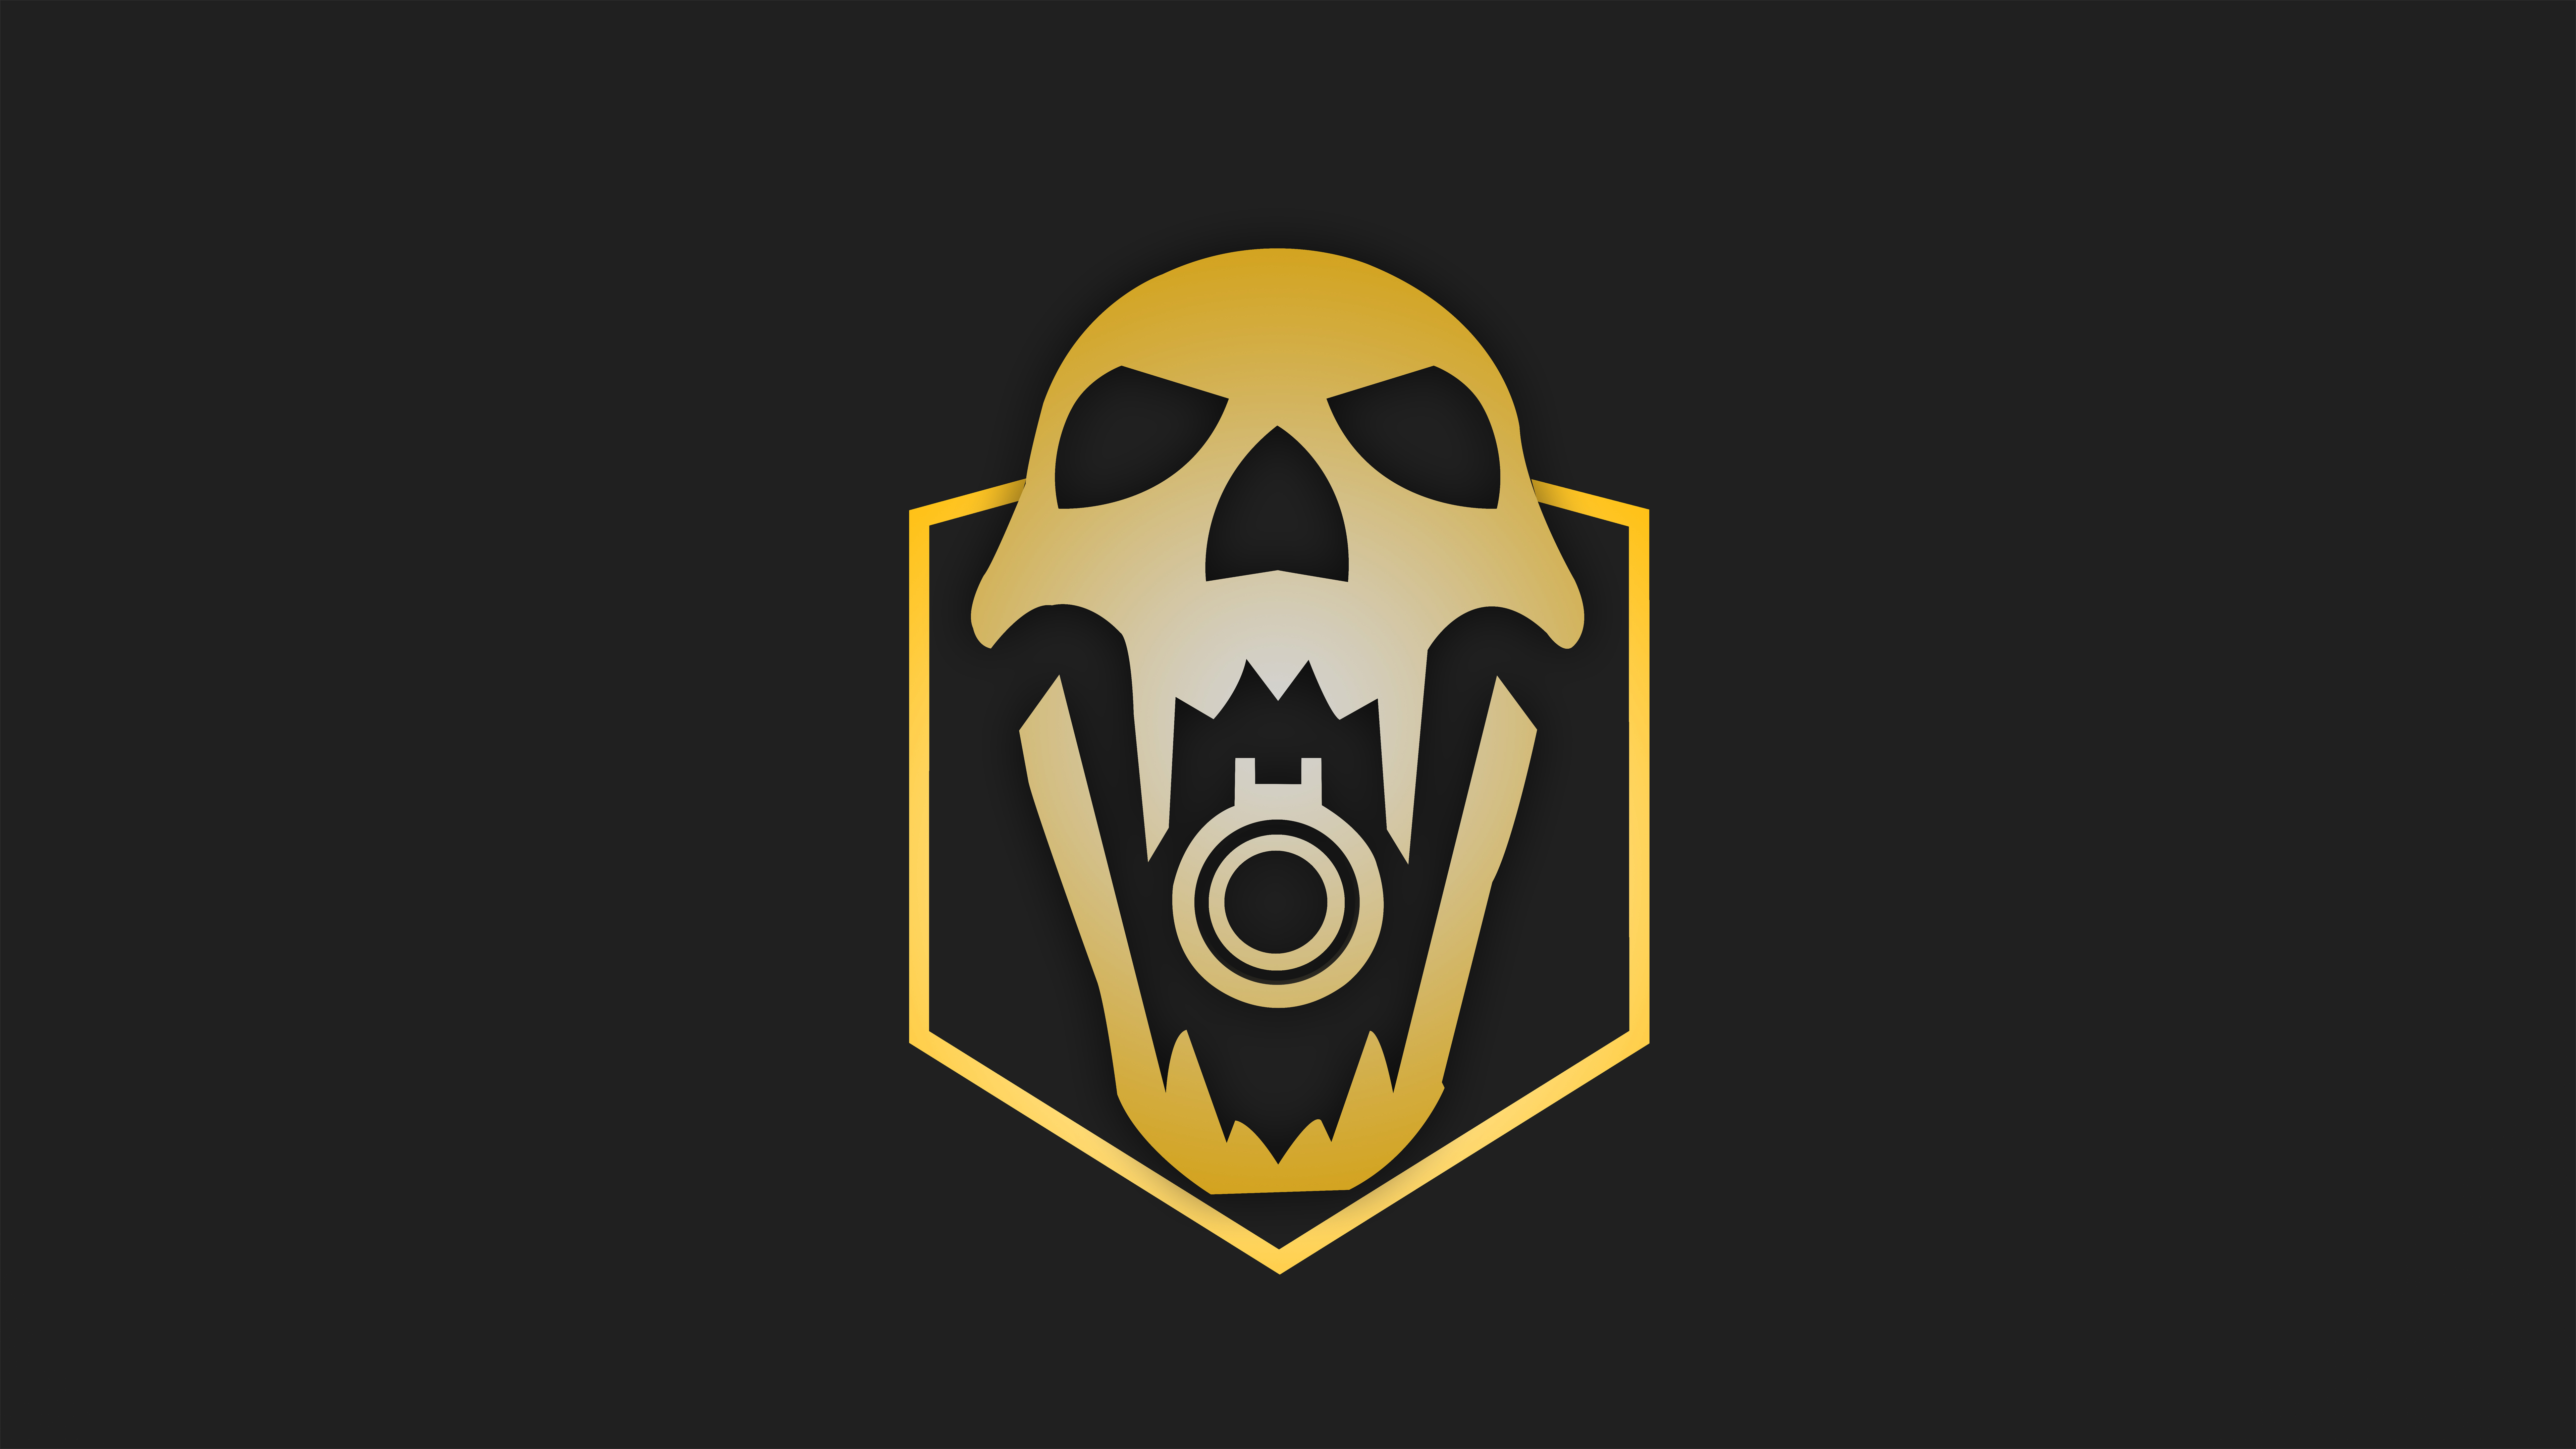 7680x4320 tom clancys rainbow six siege logo 8k hd 4k wallpapers